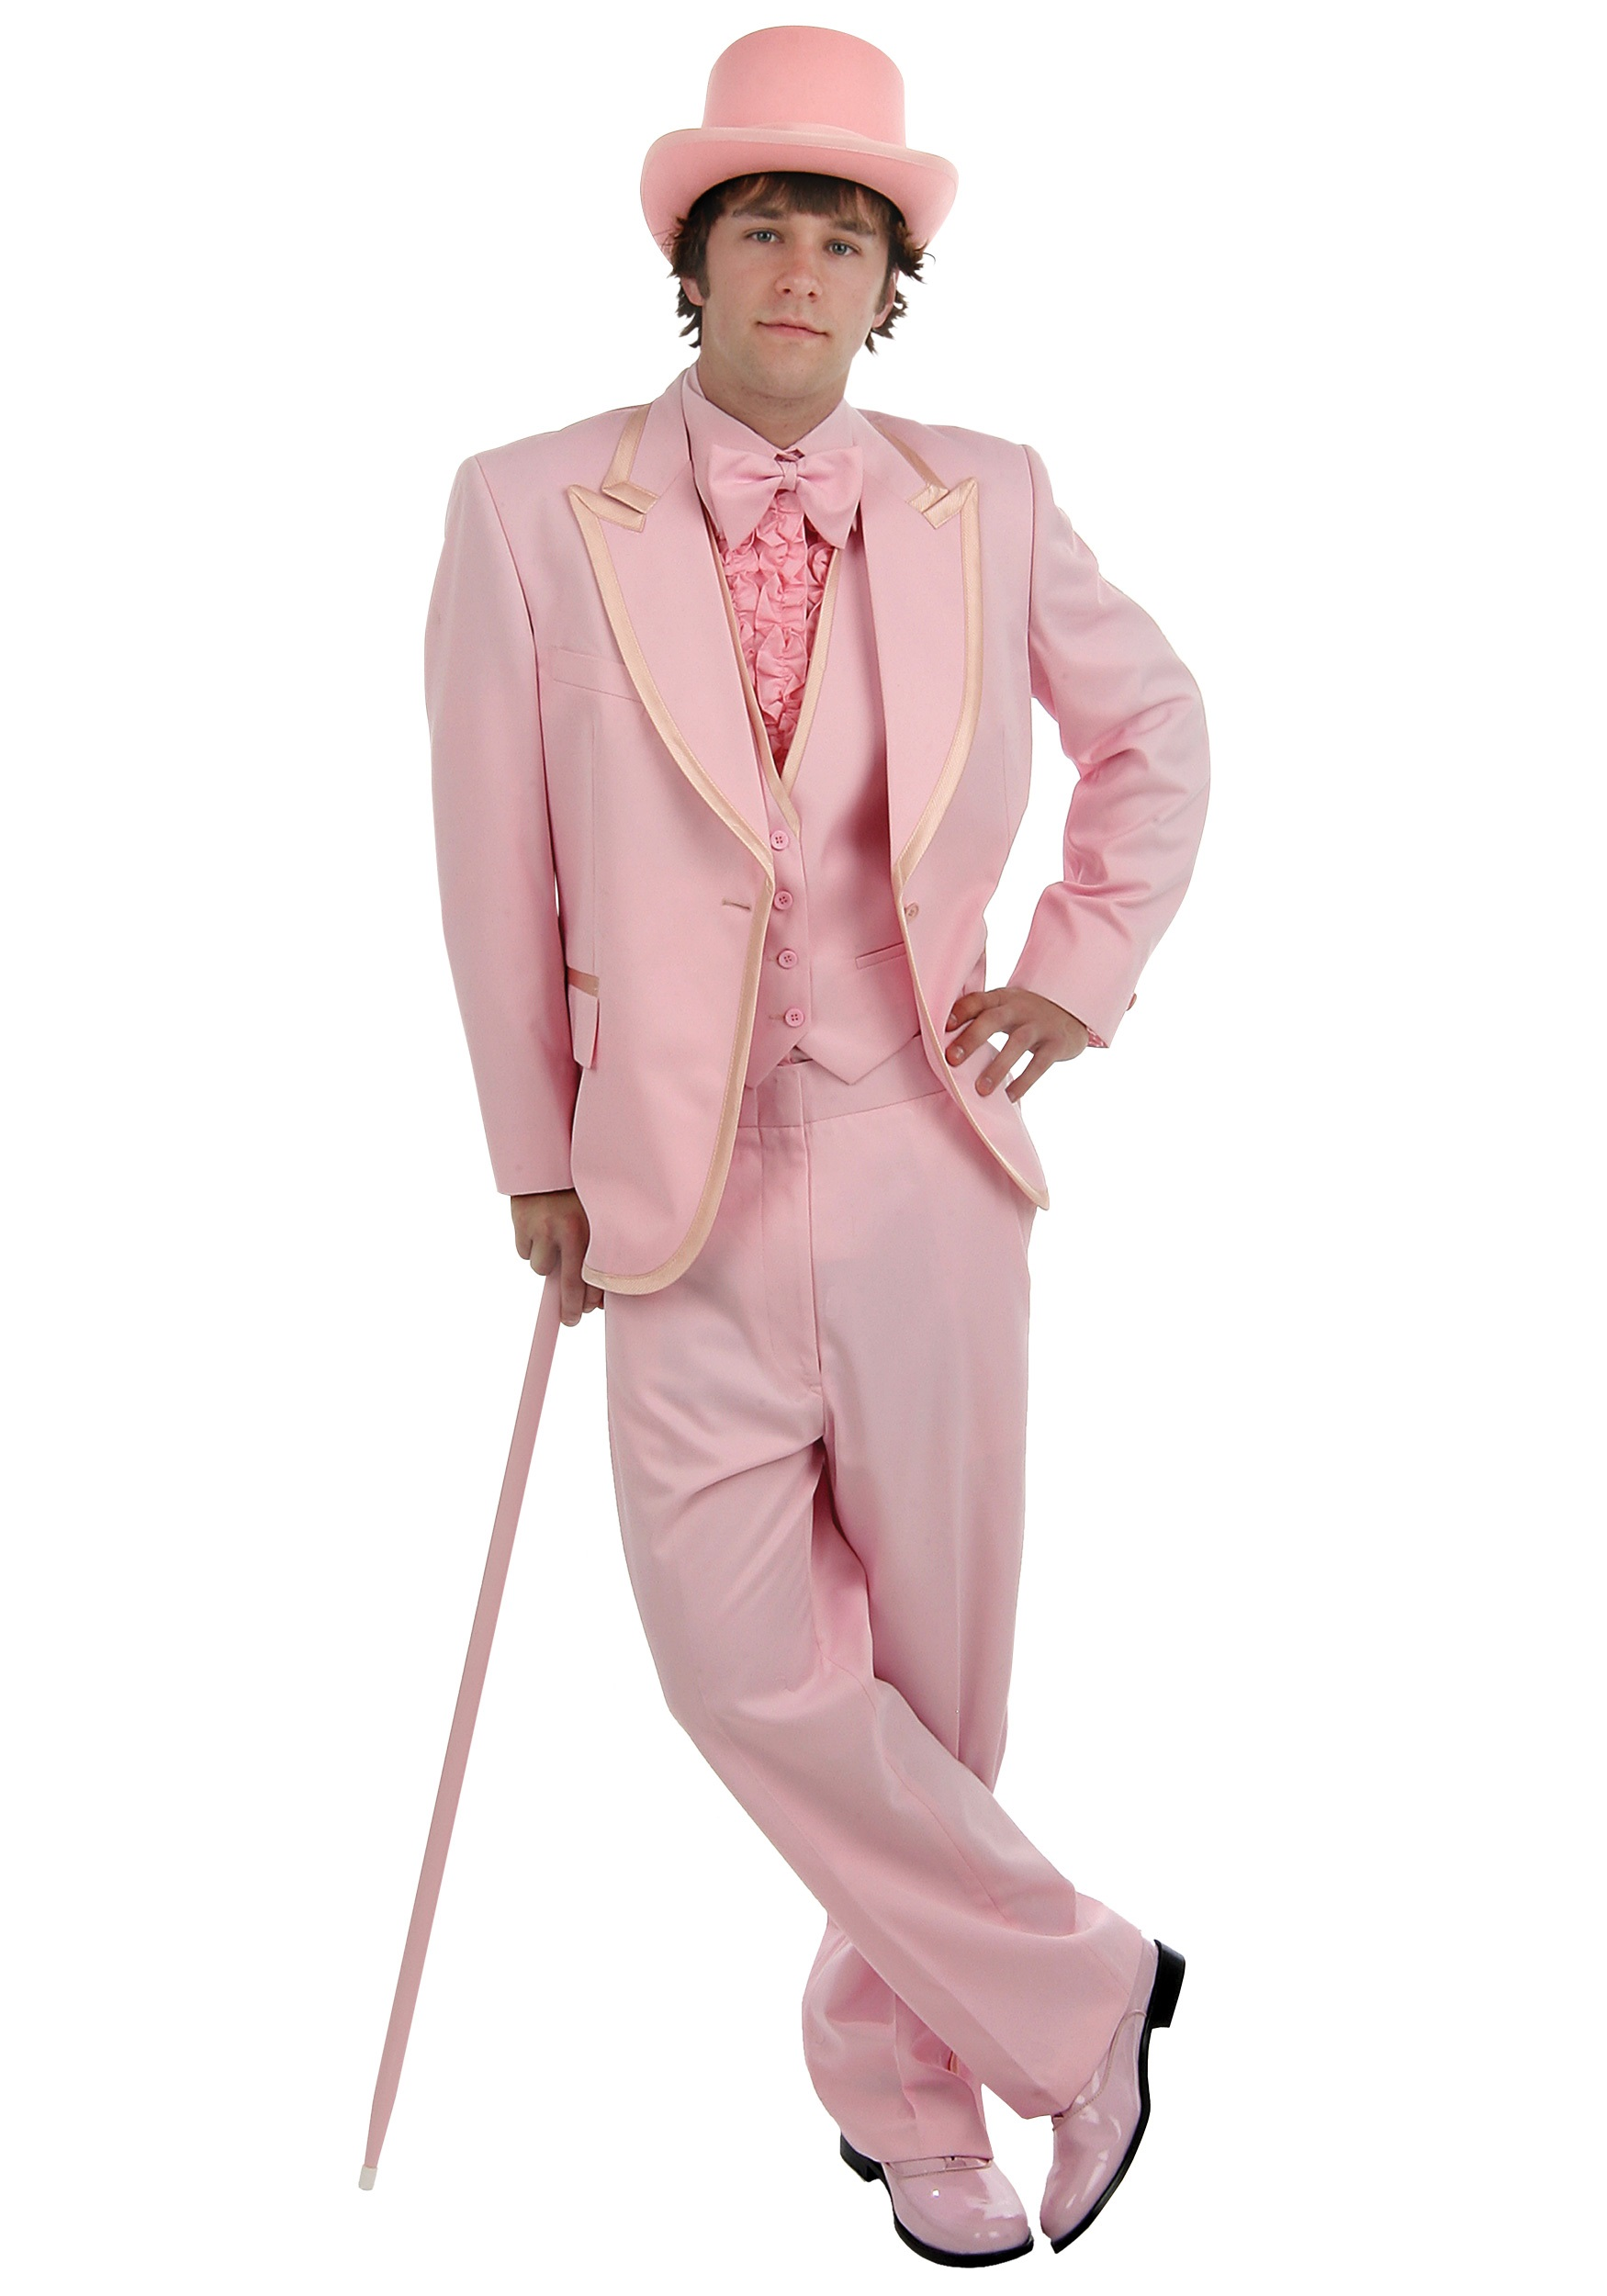 cad9579dd Men's Pink Tuxedo - Halloween Costume Ideas 2019